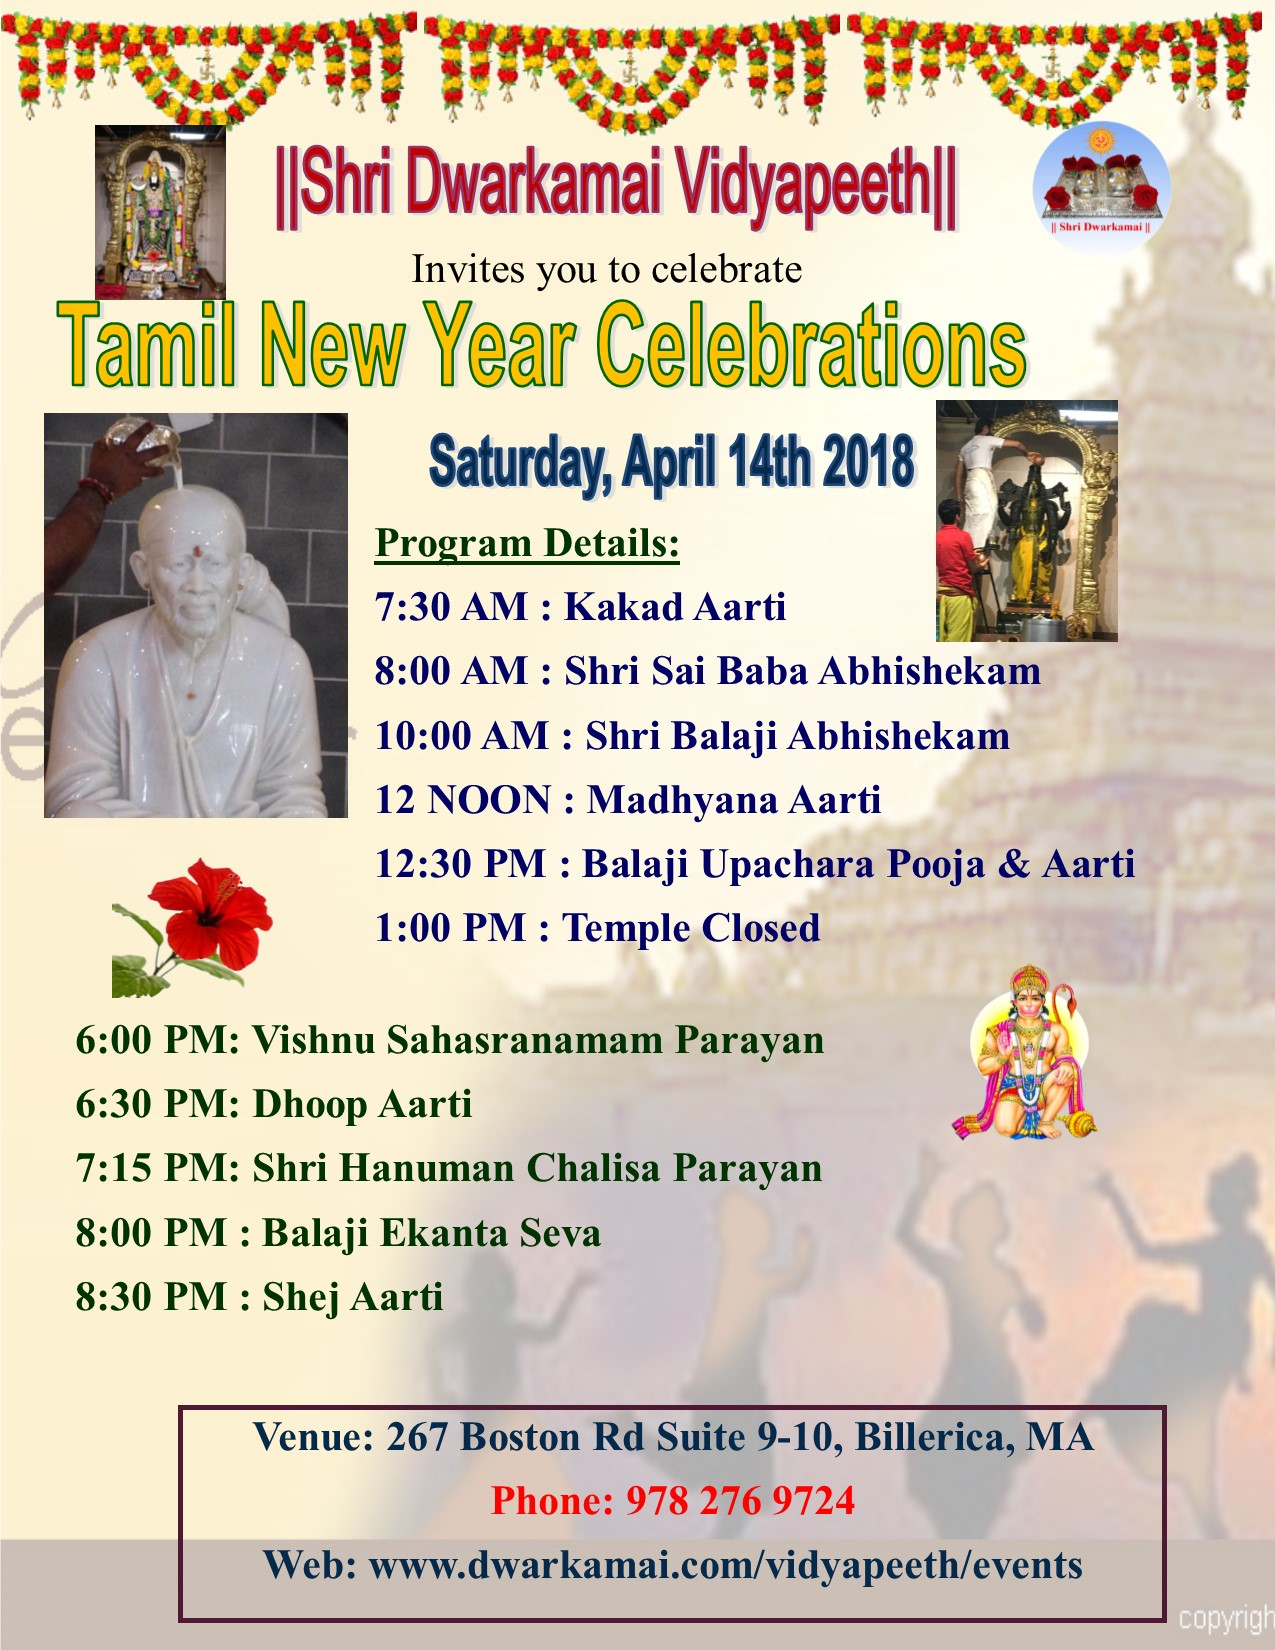 Shirdi Sai Baba Temple, 267 Boston Rd, Billerica, MA - Shri